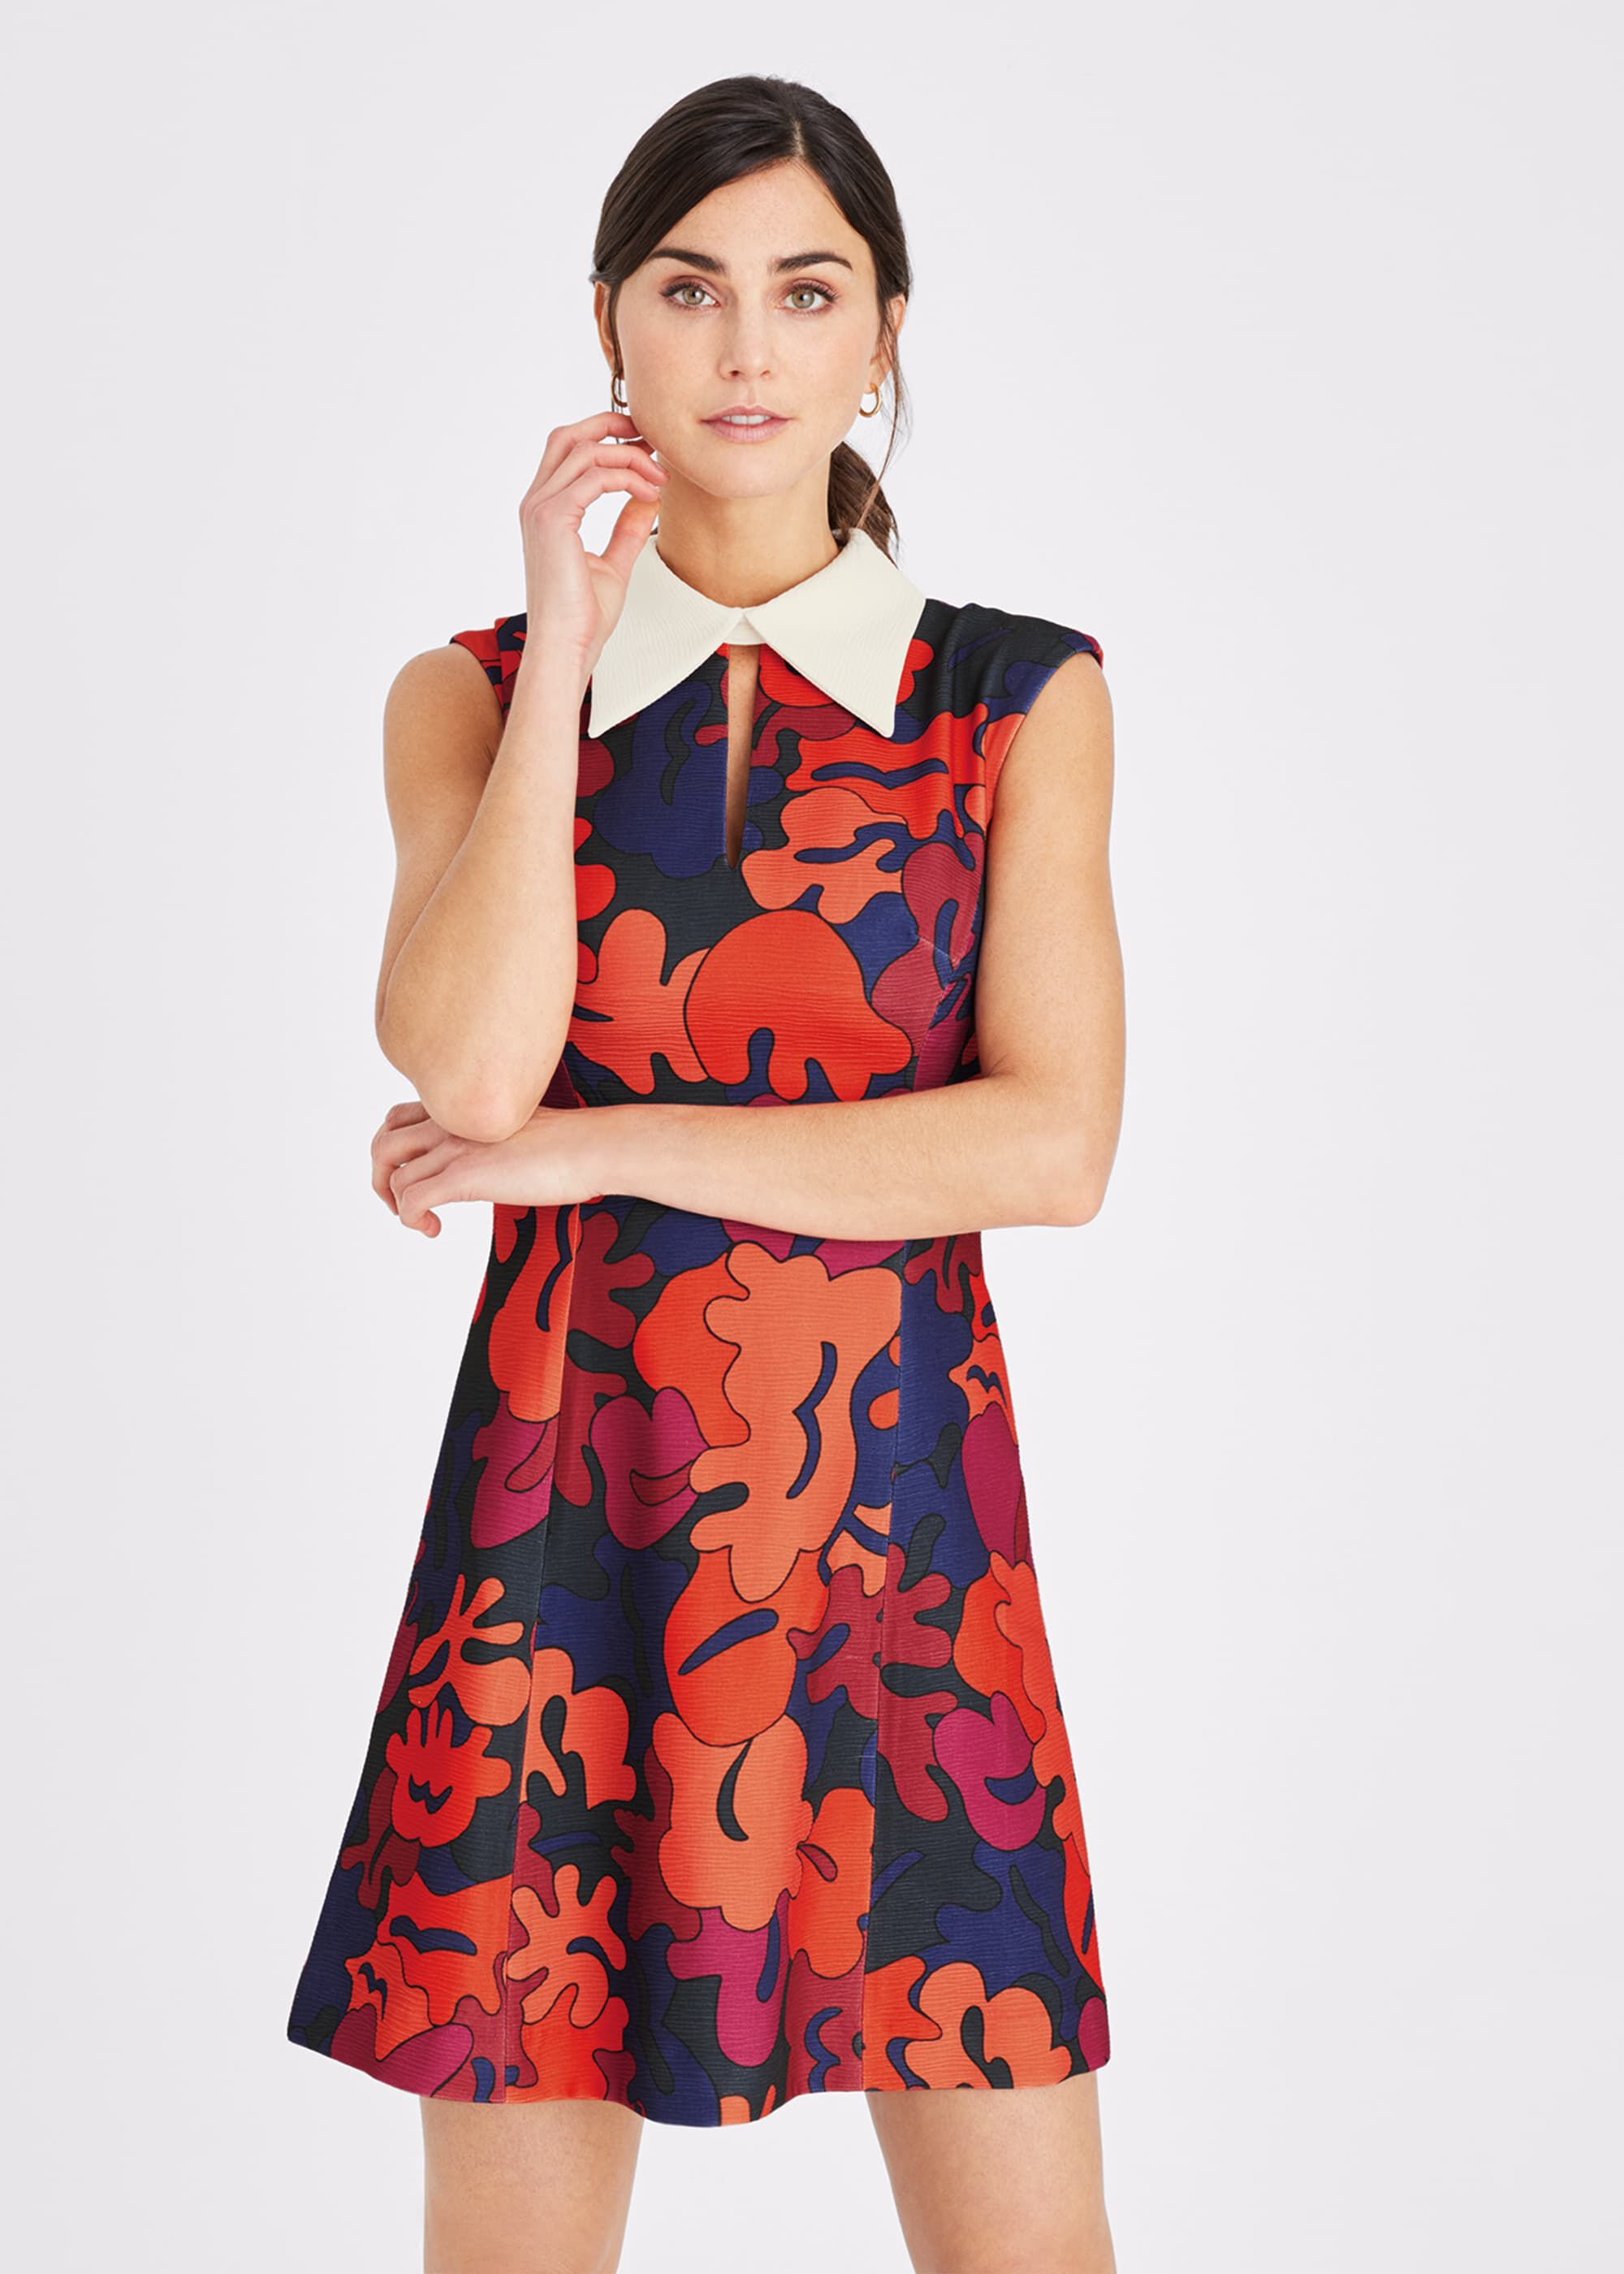 500 Vintage Style Dresses for Sale | Vintage Inspired Dresses Damsel in a Dress Valenta Print Dress Multicoloured £127.20 AT vintagedancer.com